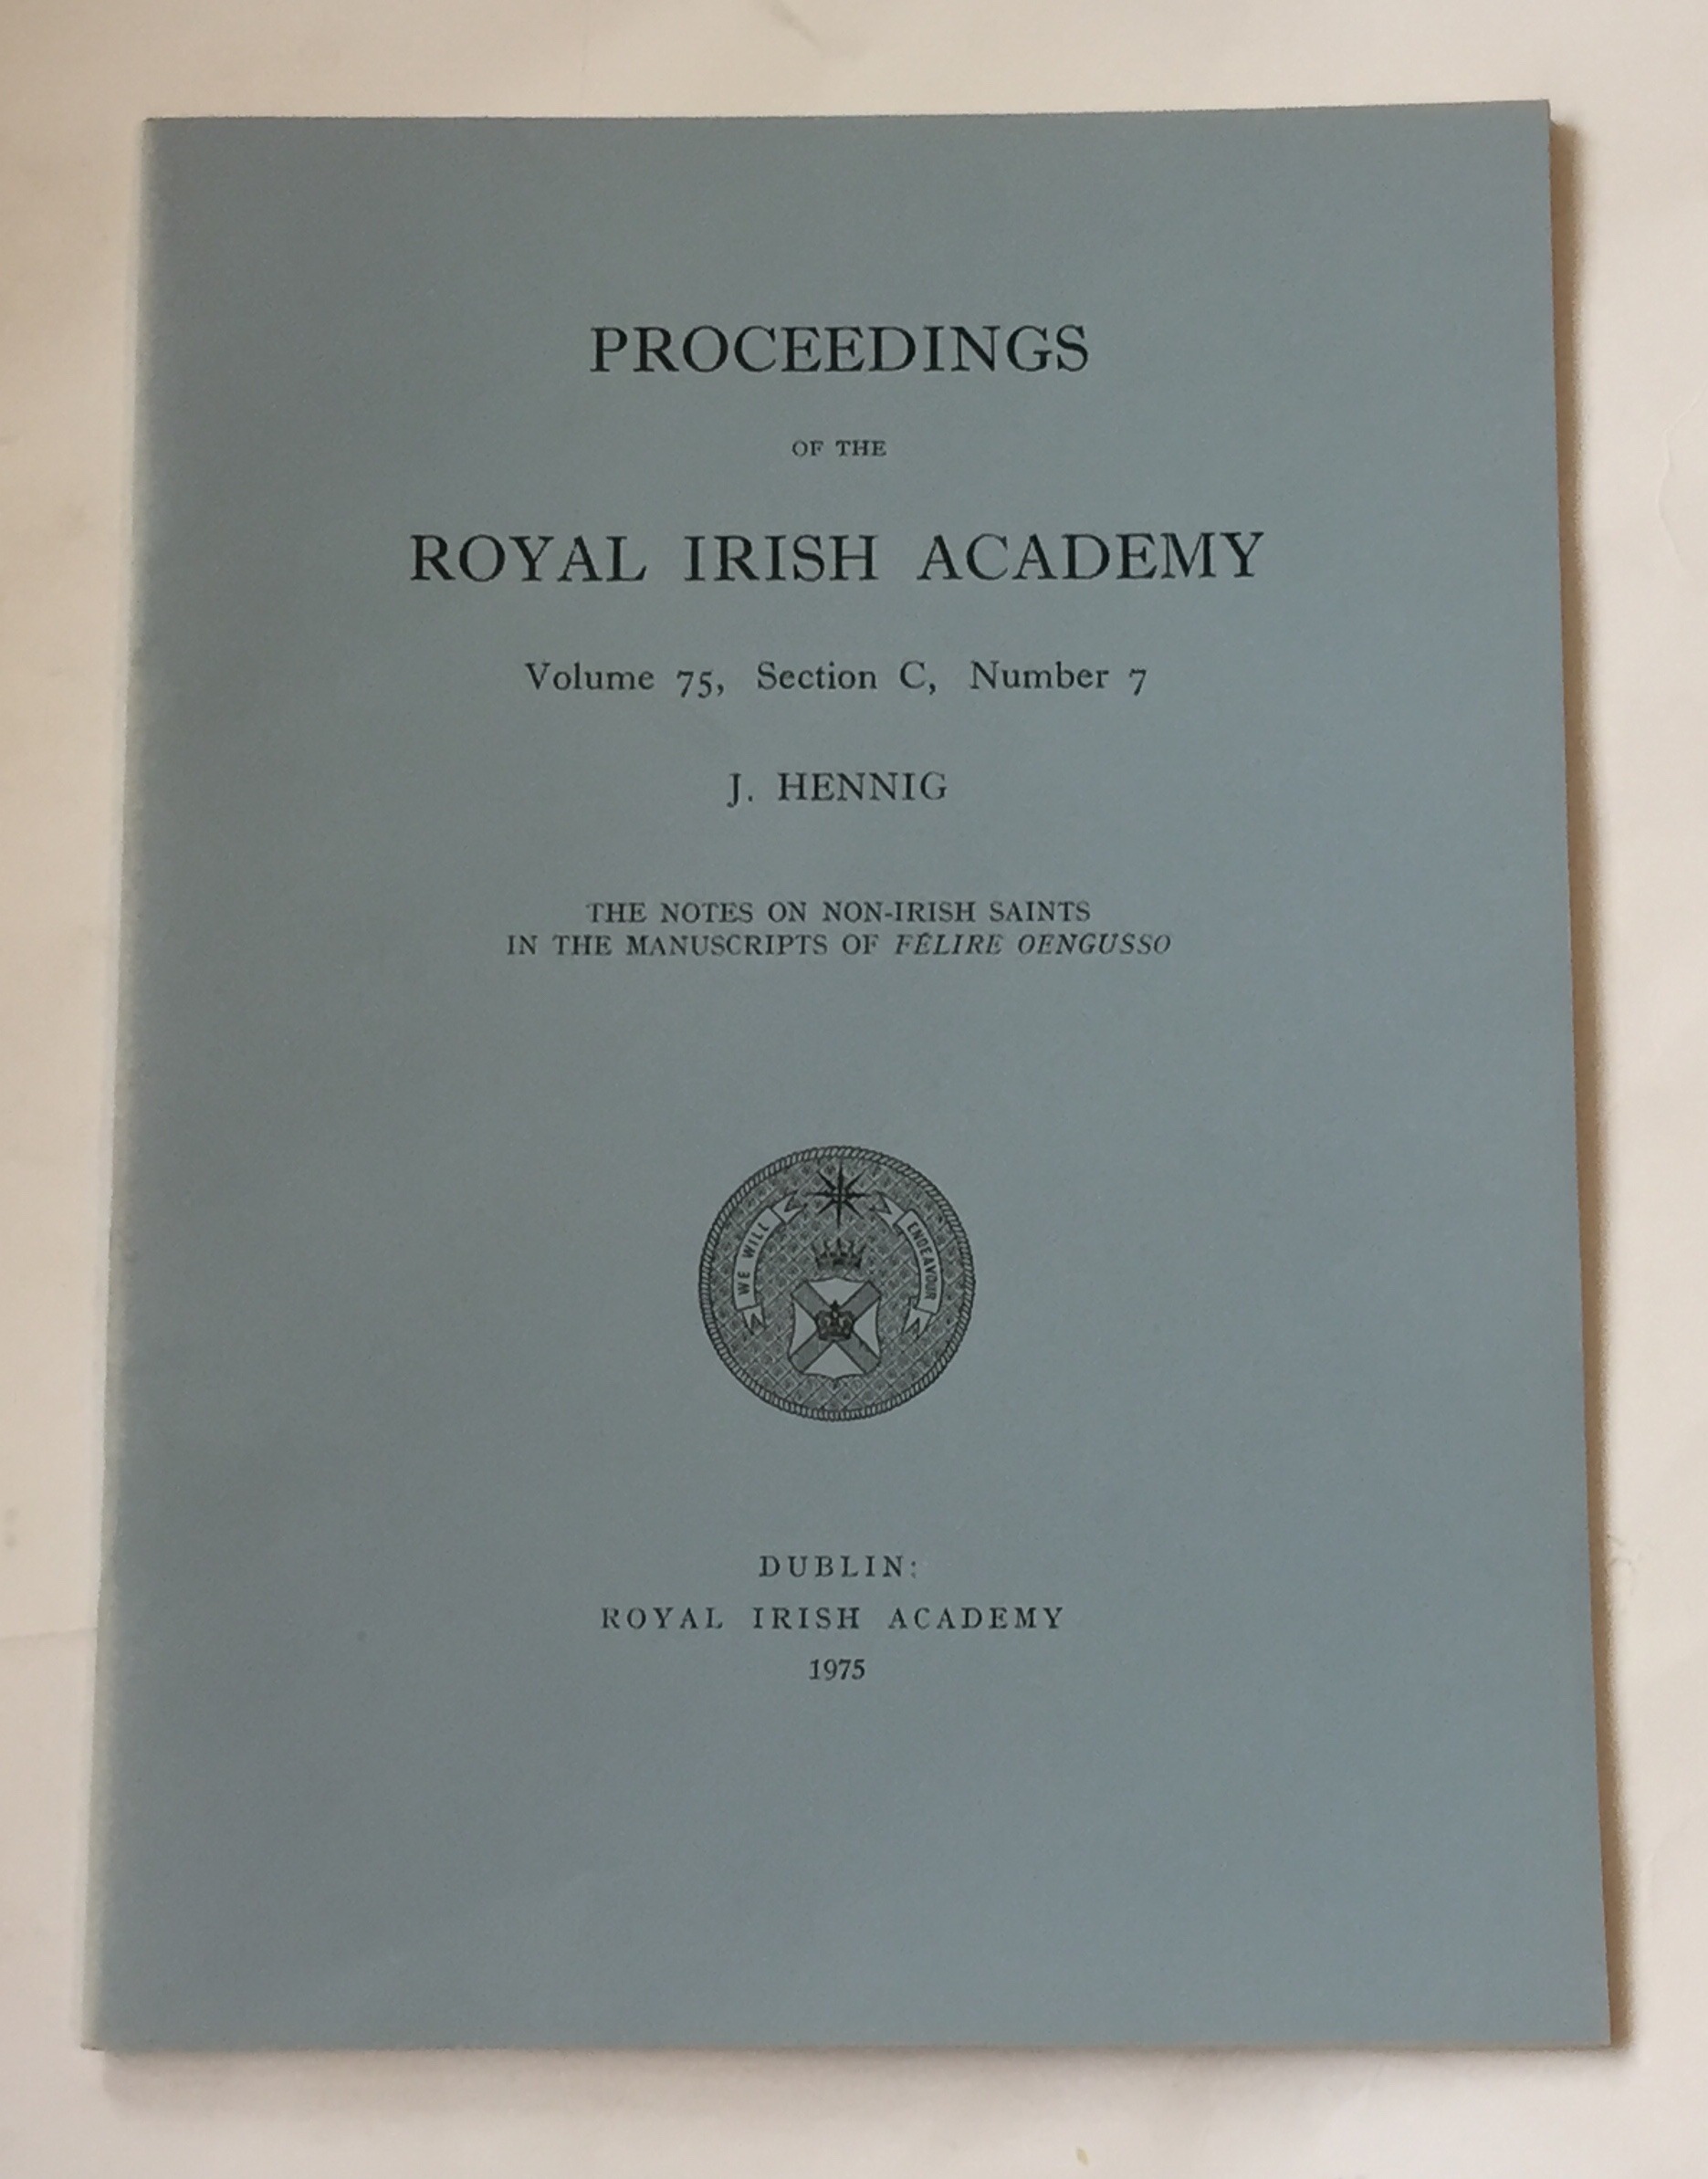 Image for The notes on non-Irish saints in the manuscripts of felire oengusso :Proceedings of the Royal Irish Academy, Volume 75, Section C, No. 7